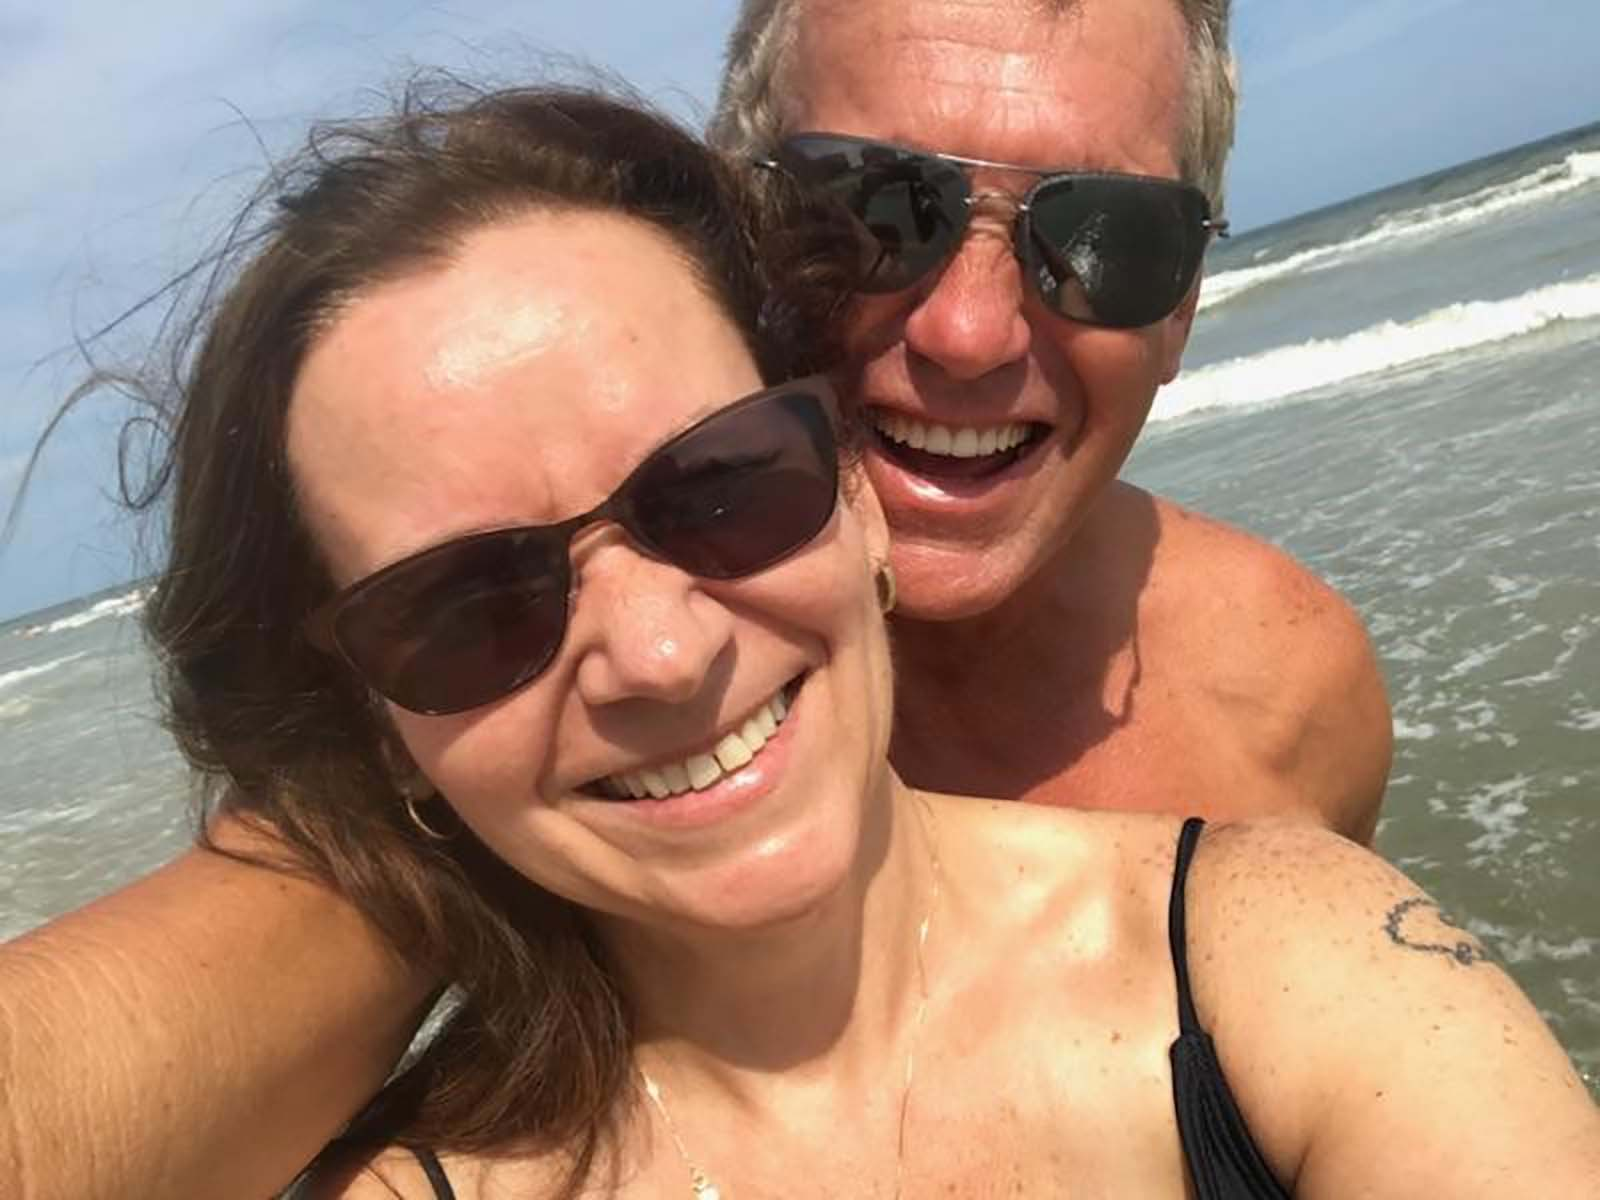 Couple taking picture on beach